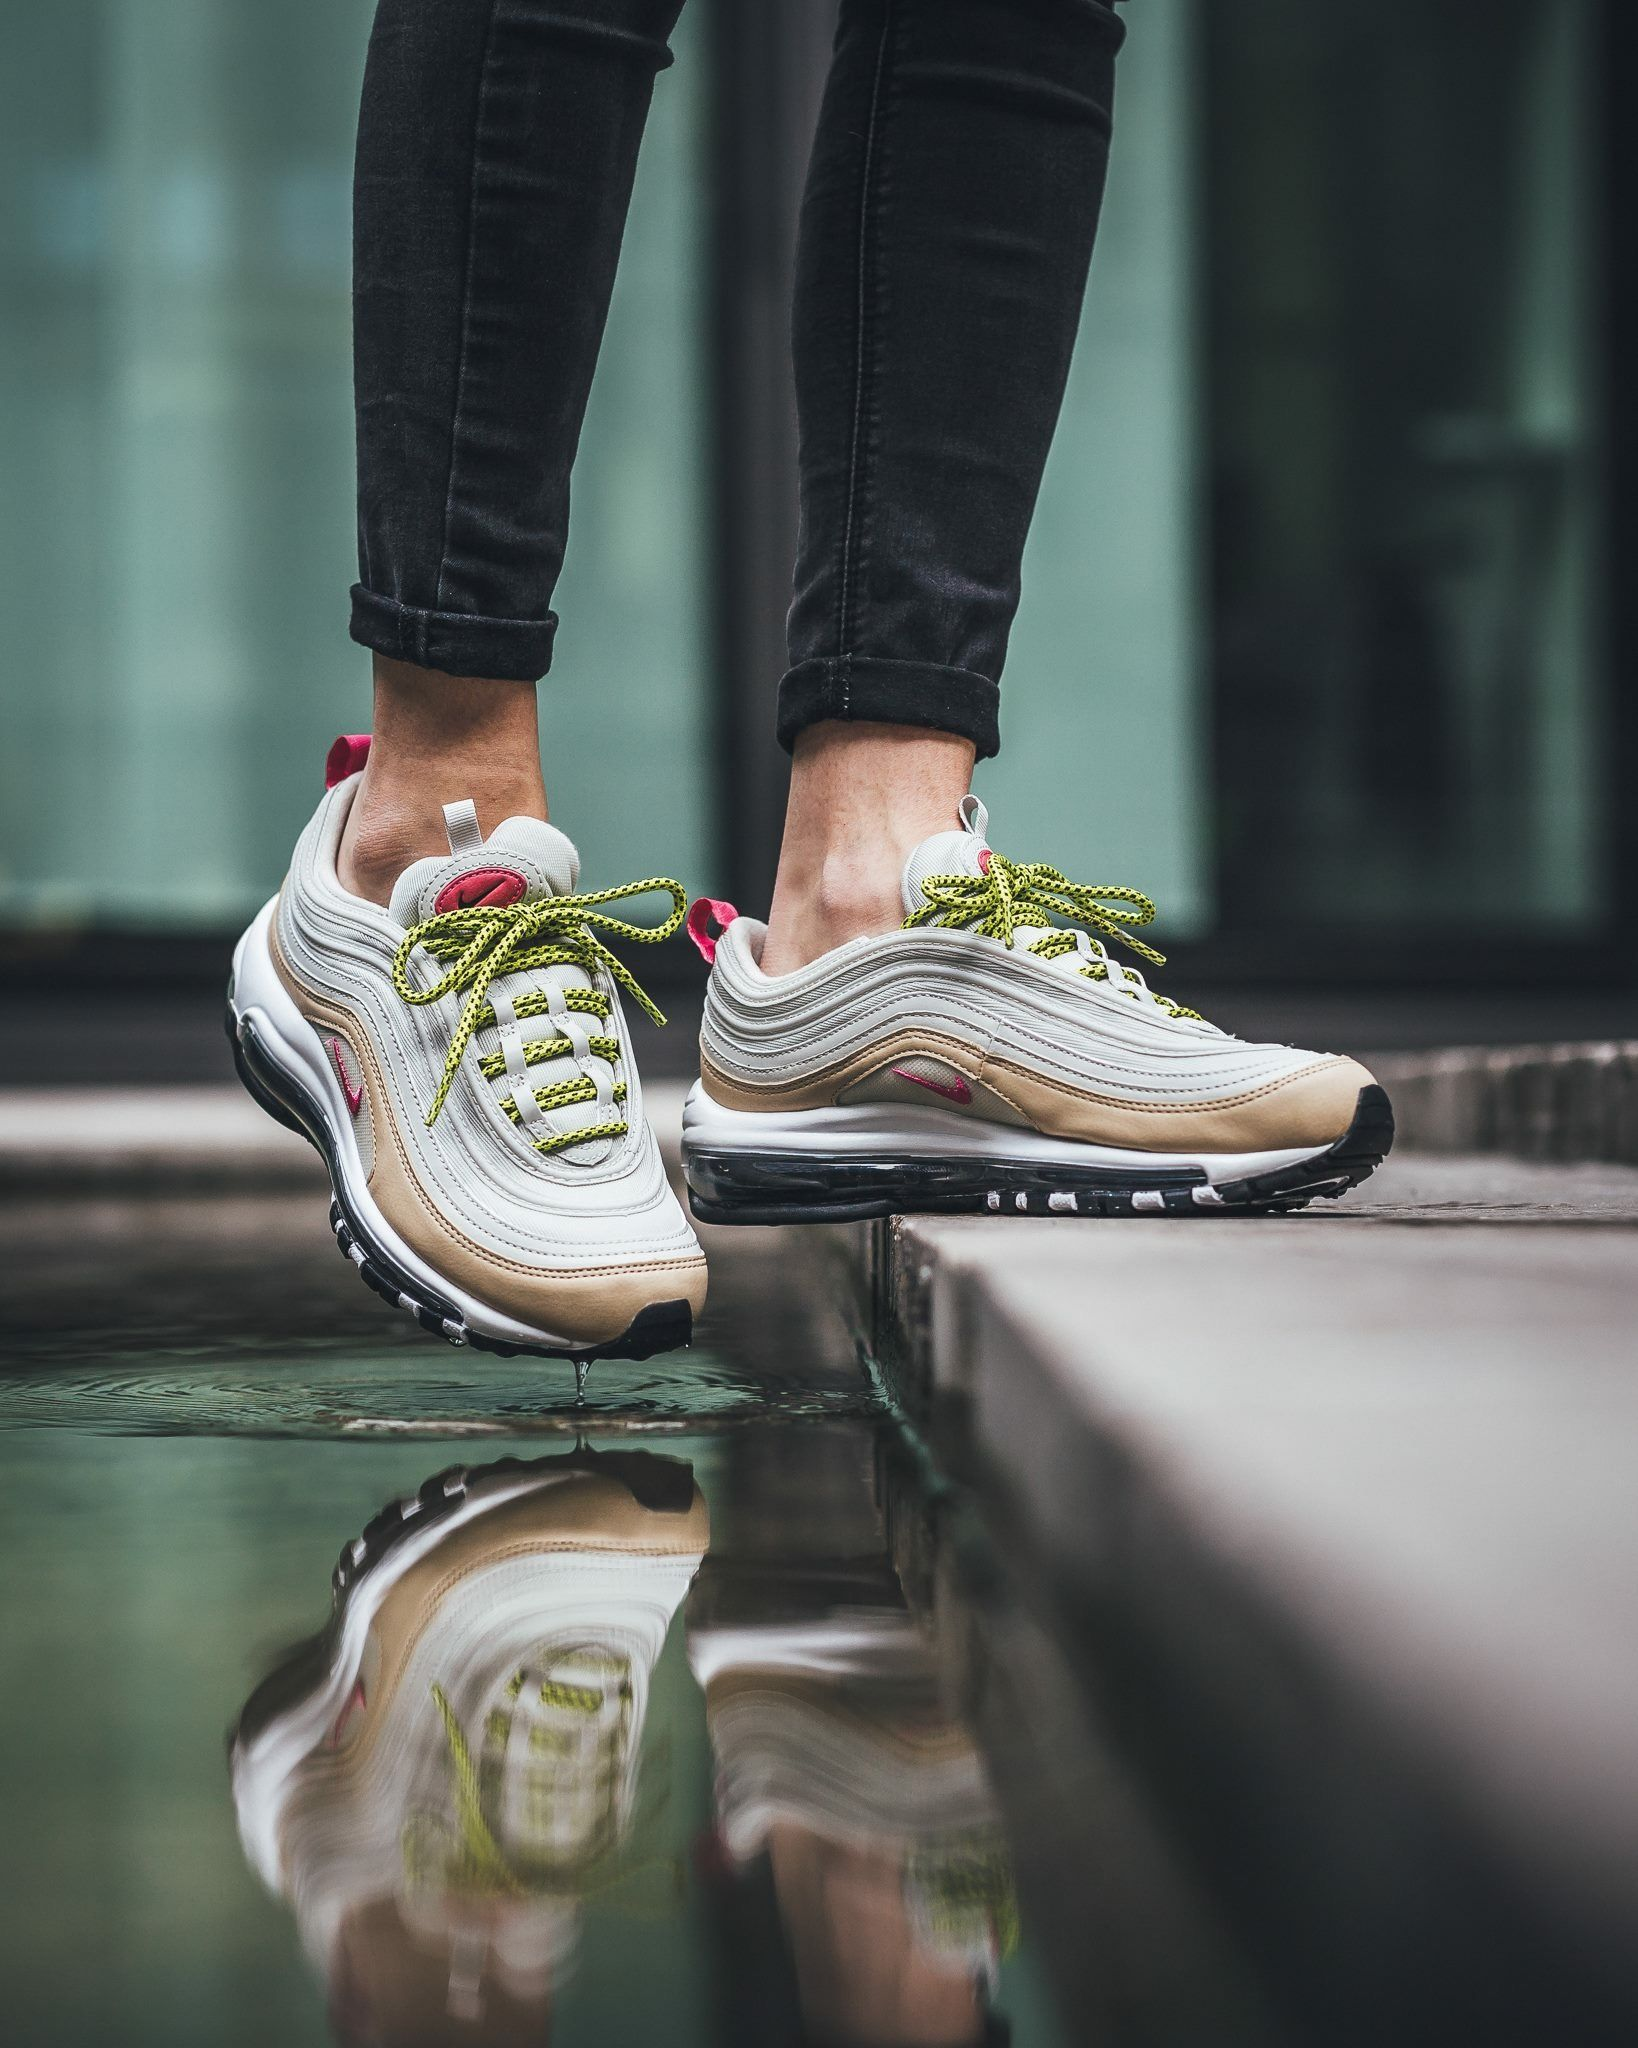 Nike Air Max 97 shoes Pinterest Air max 97, Air max and GQ